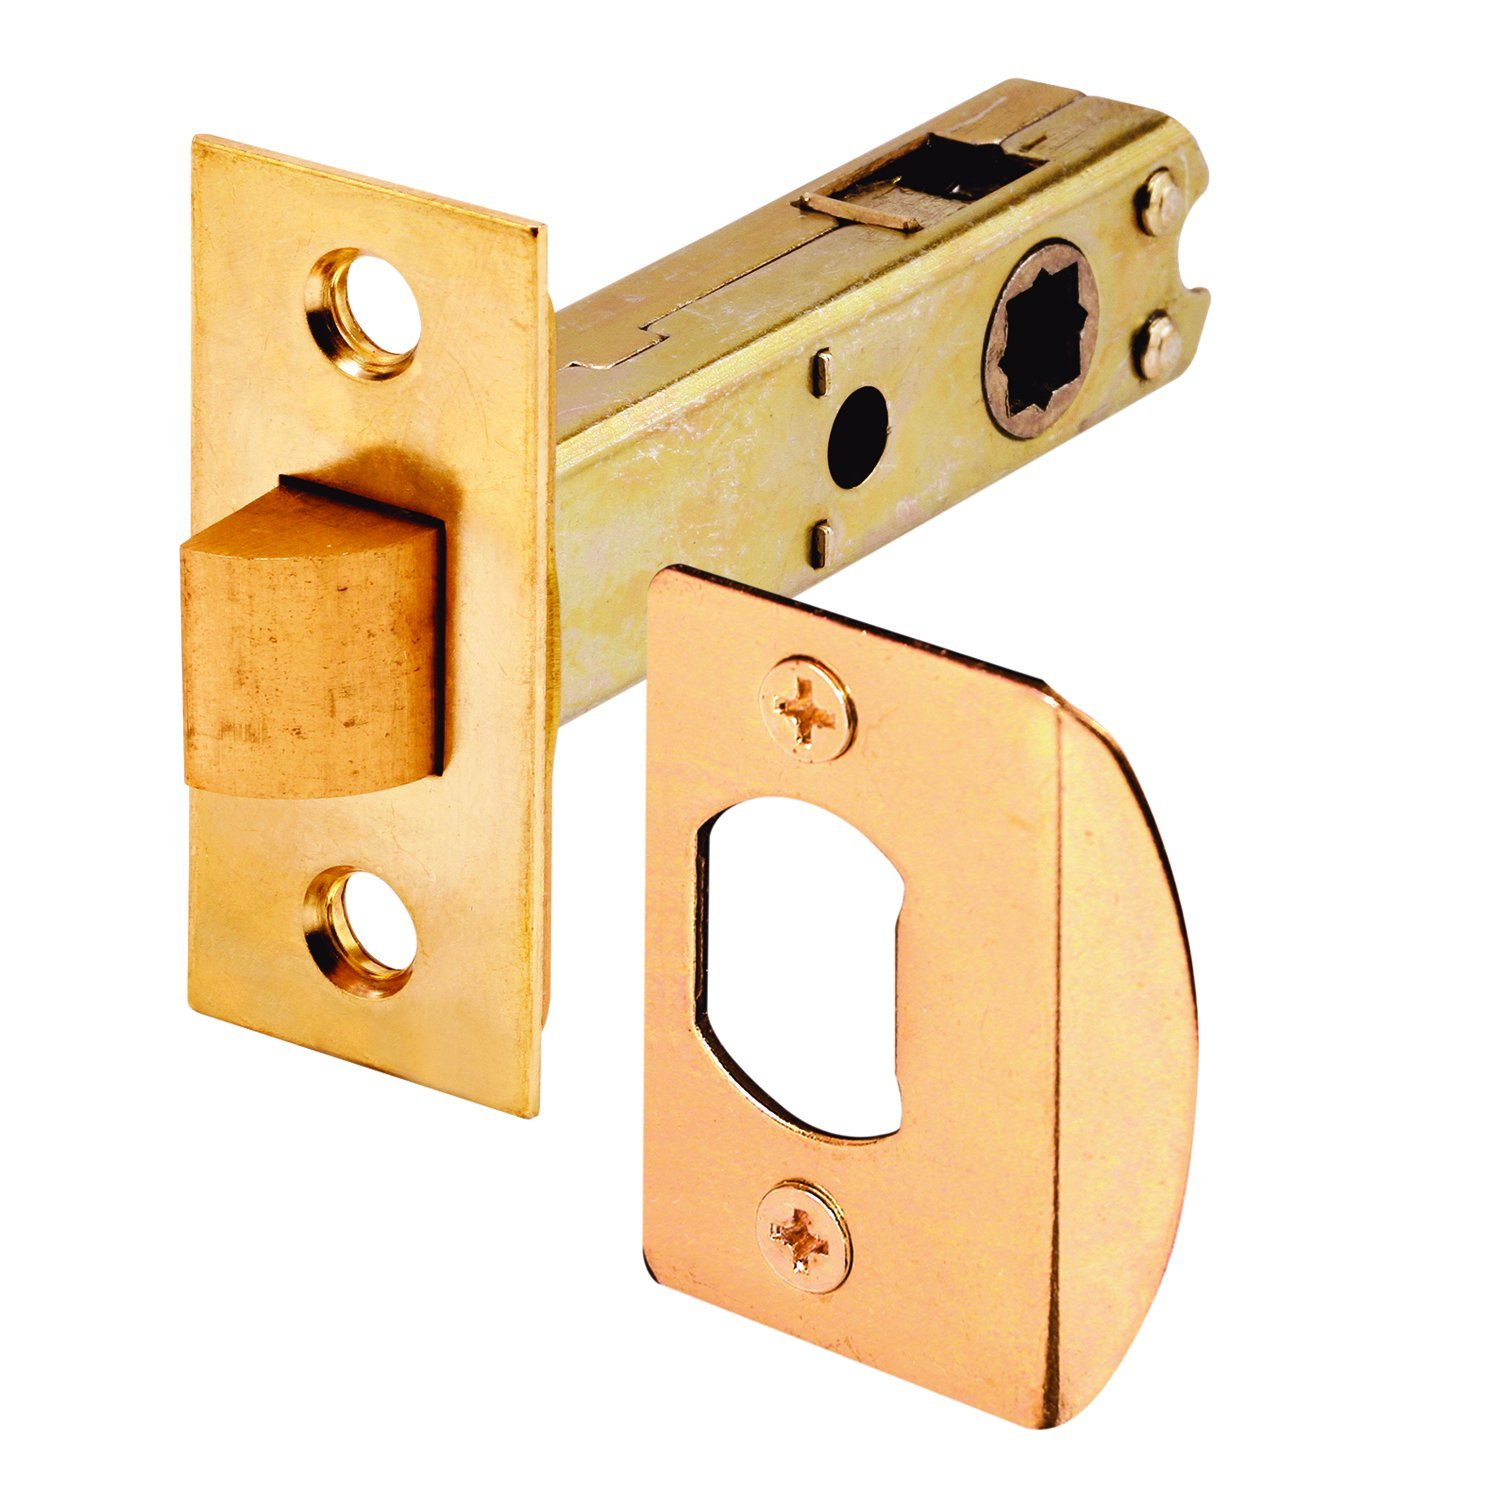 Prime Line Products E 2281 Passage Door Latch 9 32 in. 5 16 in. Square Drive Steel Brass Finish